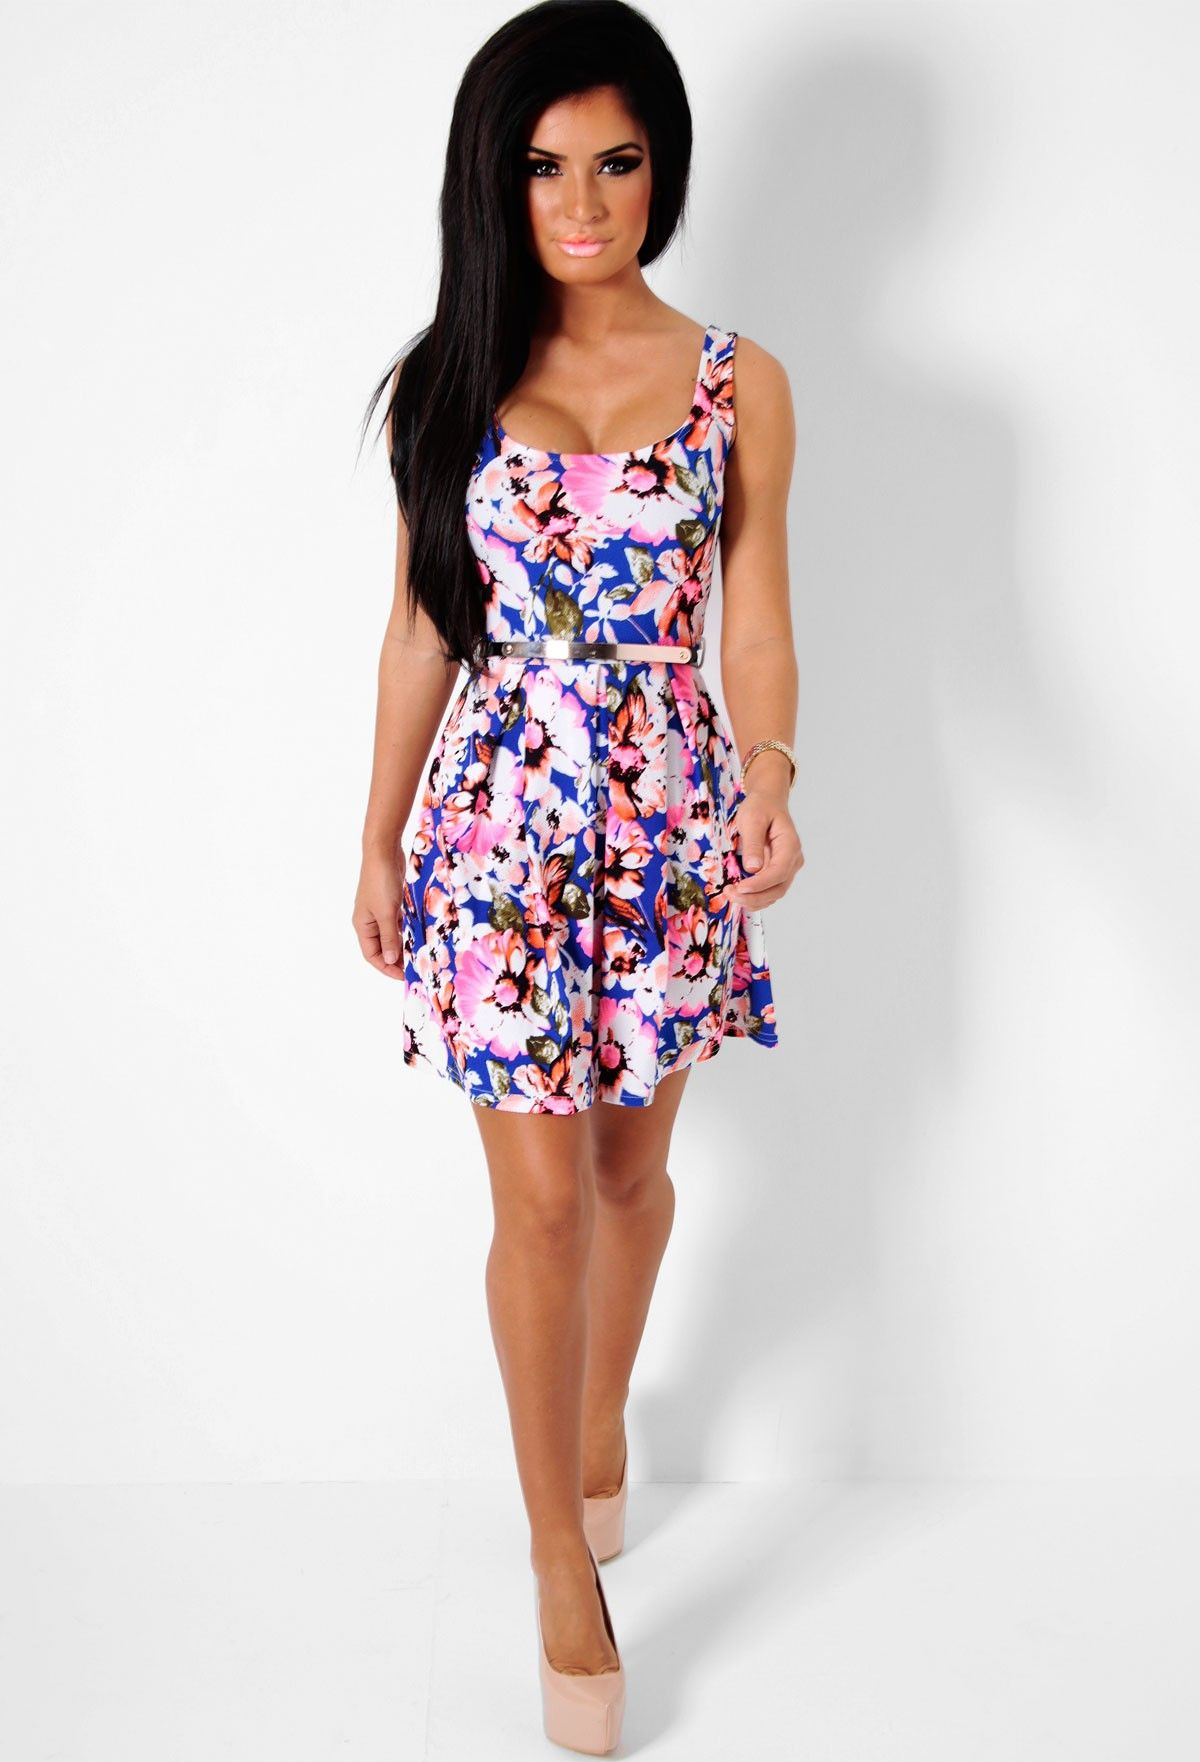 Morze Blue and Neon Pink Floral Skater Dress- I need this